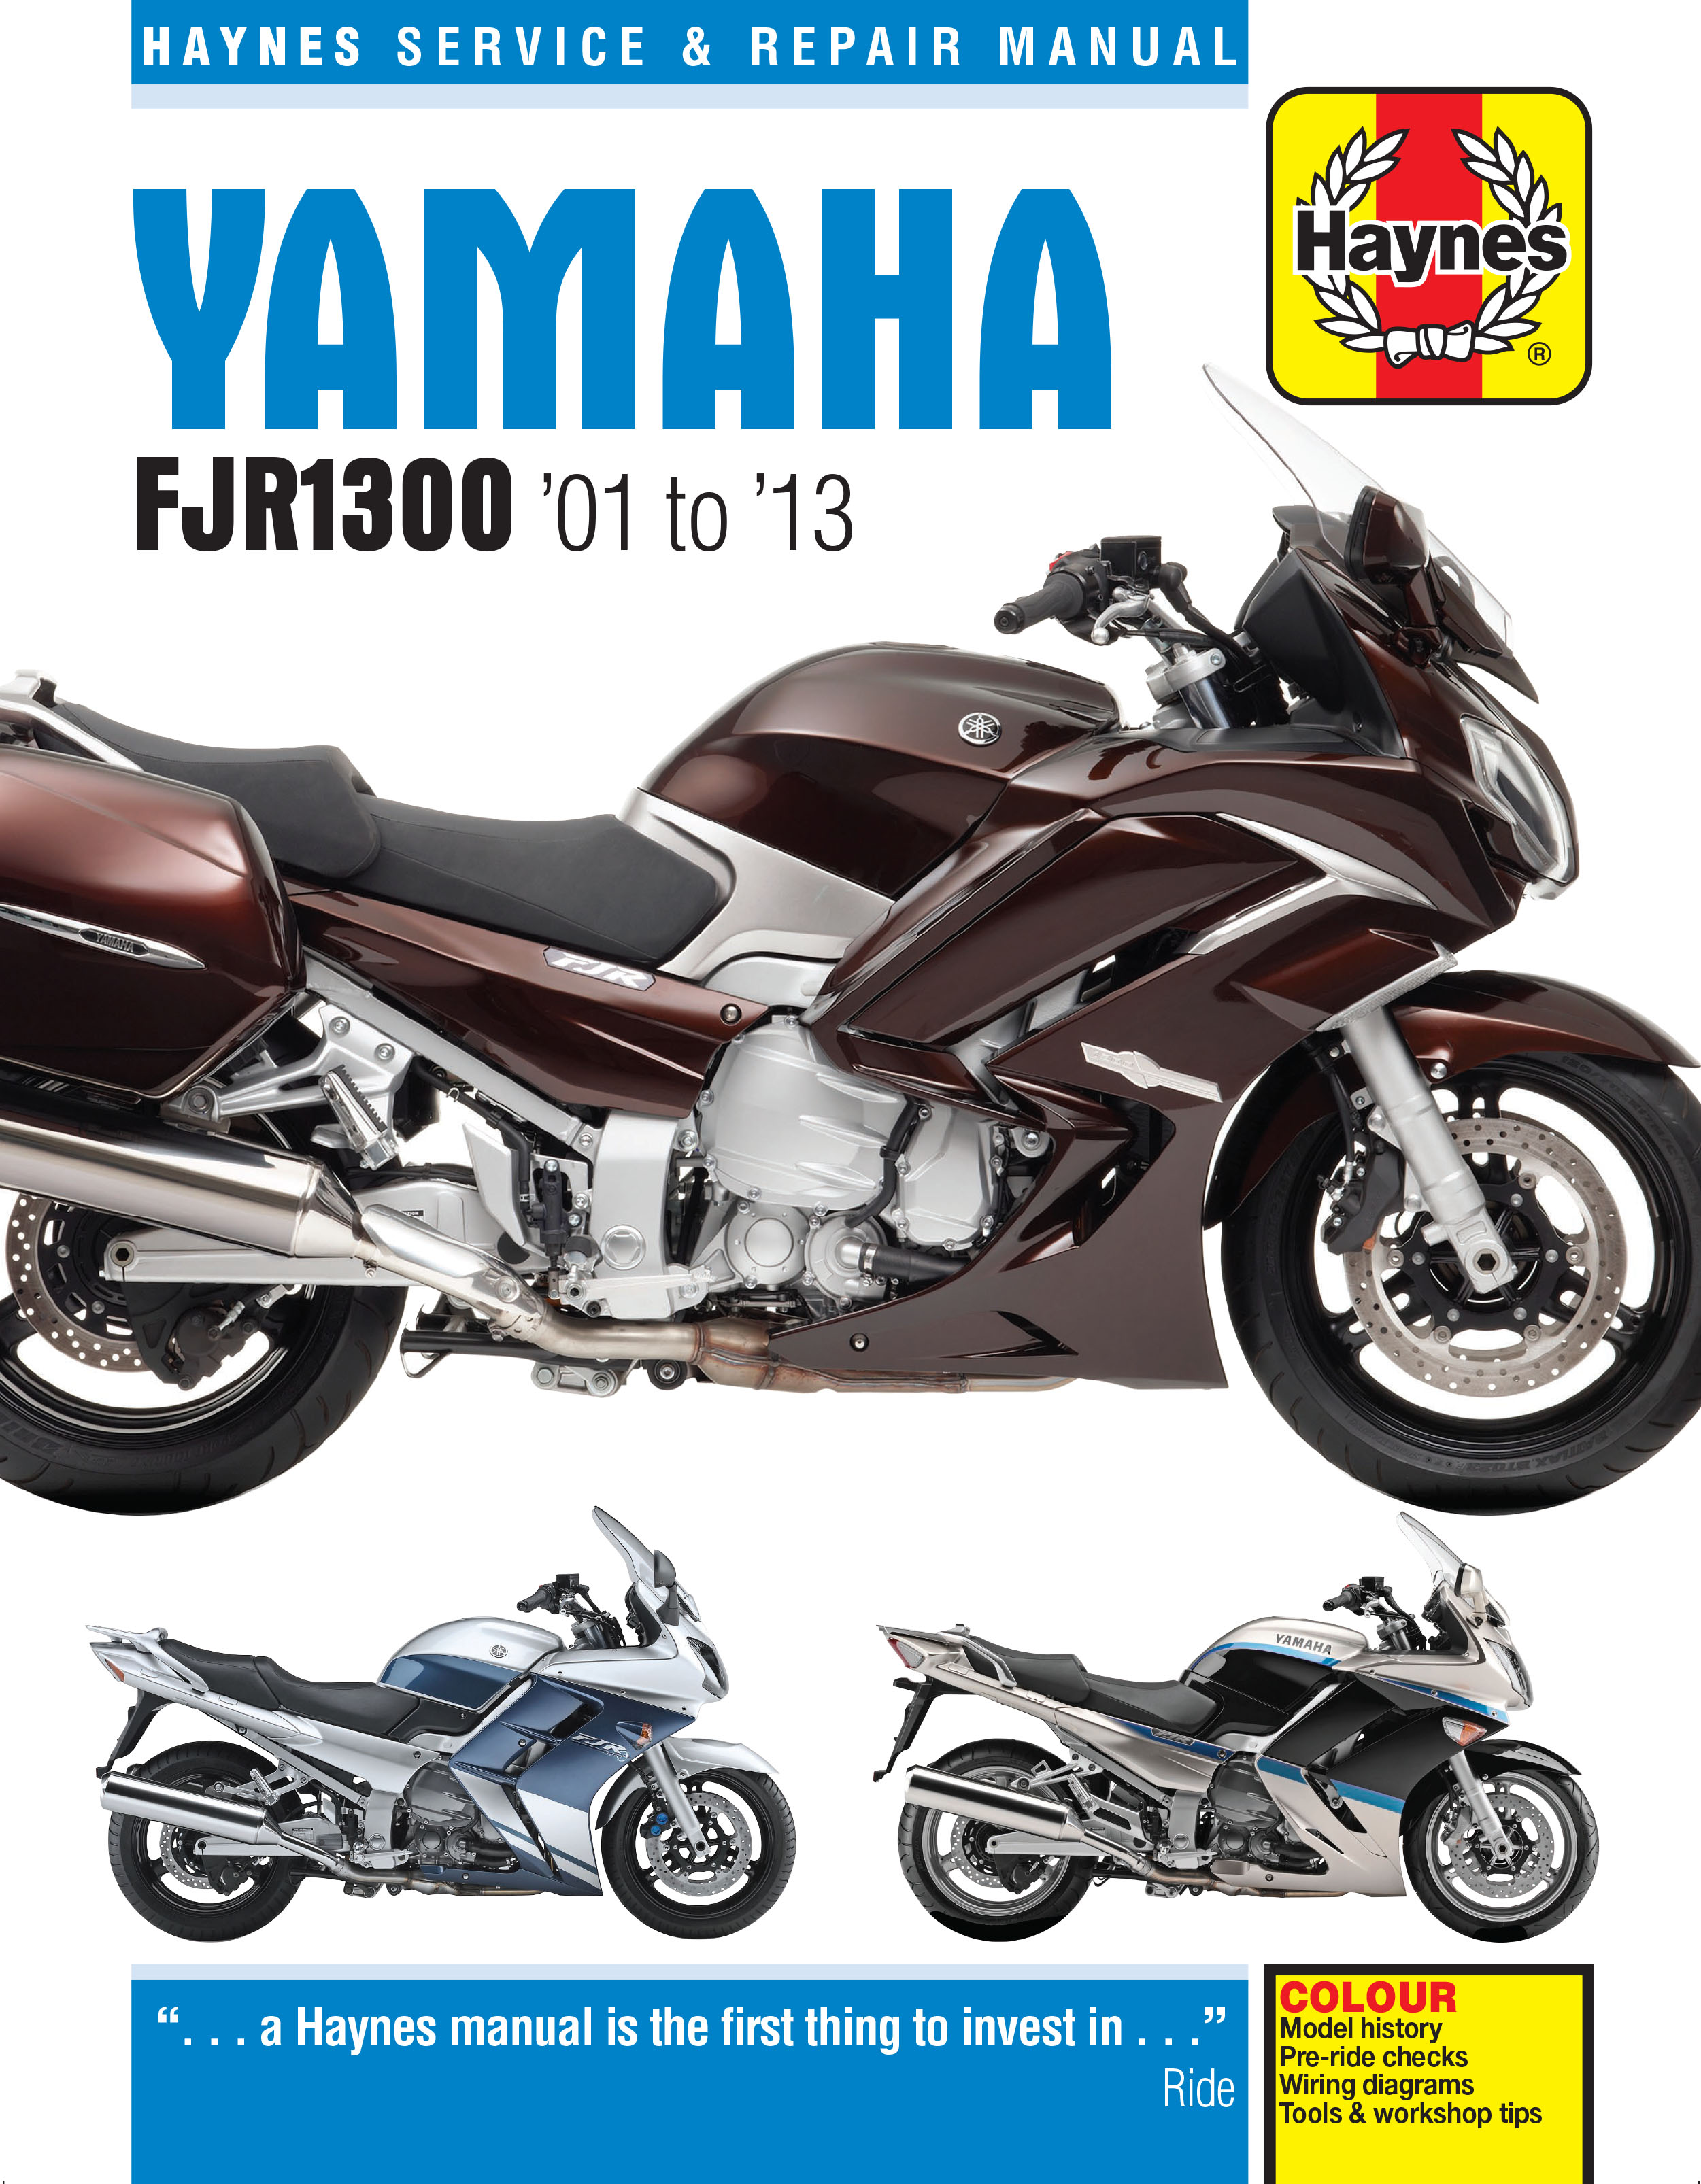 Enlarge Yamaha FJR1300 .